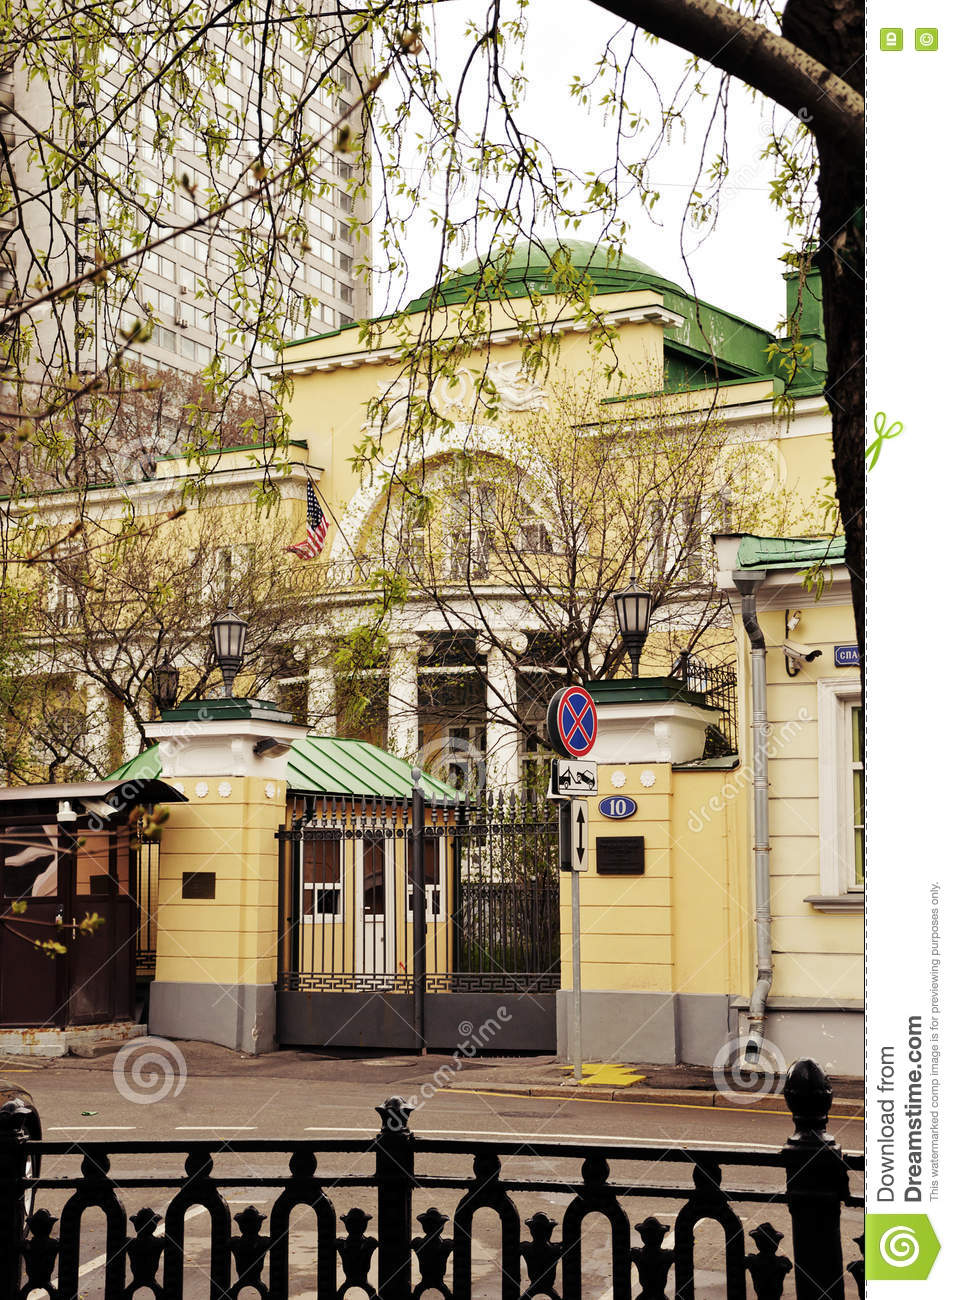 Spaso House Moscow, View Of The Spaso House, Residence Of The U.S. Ambassador To The ...